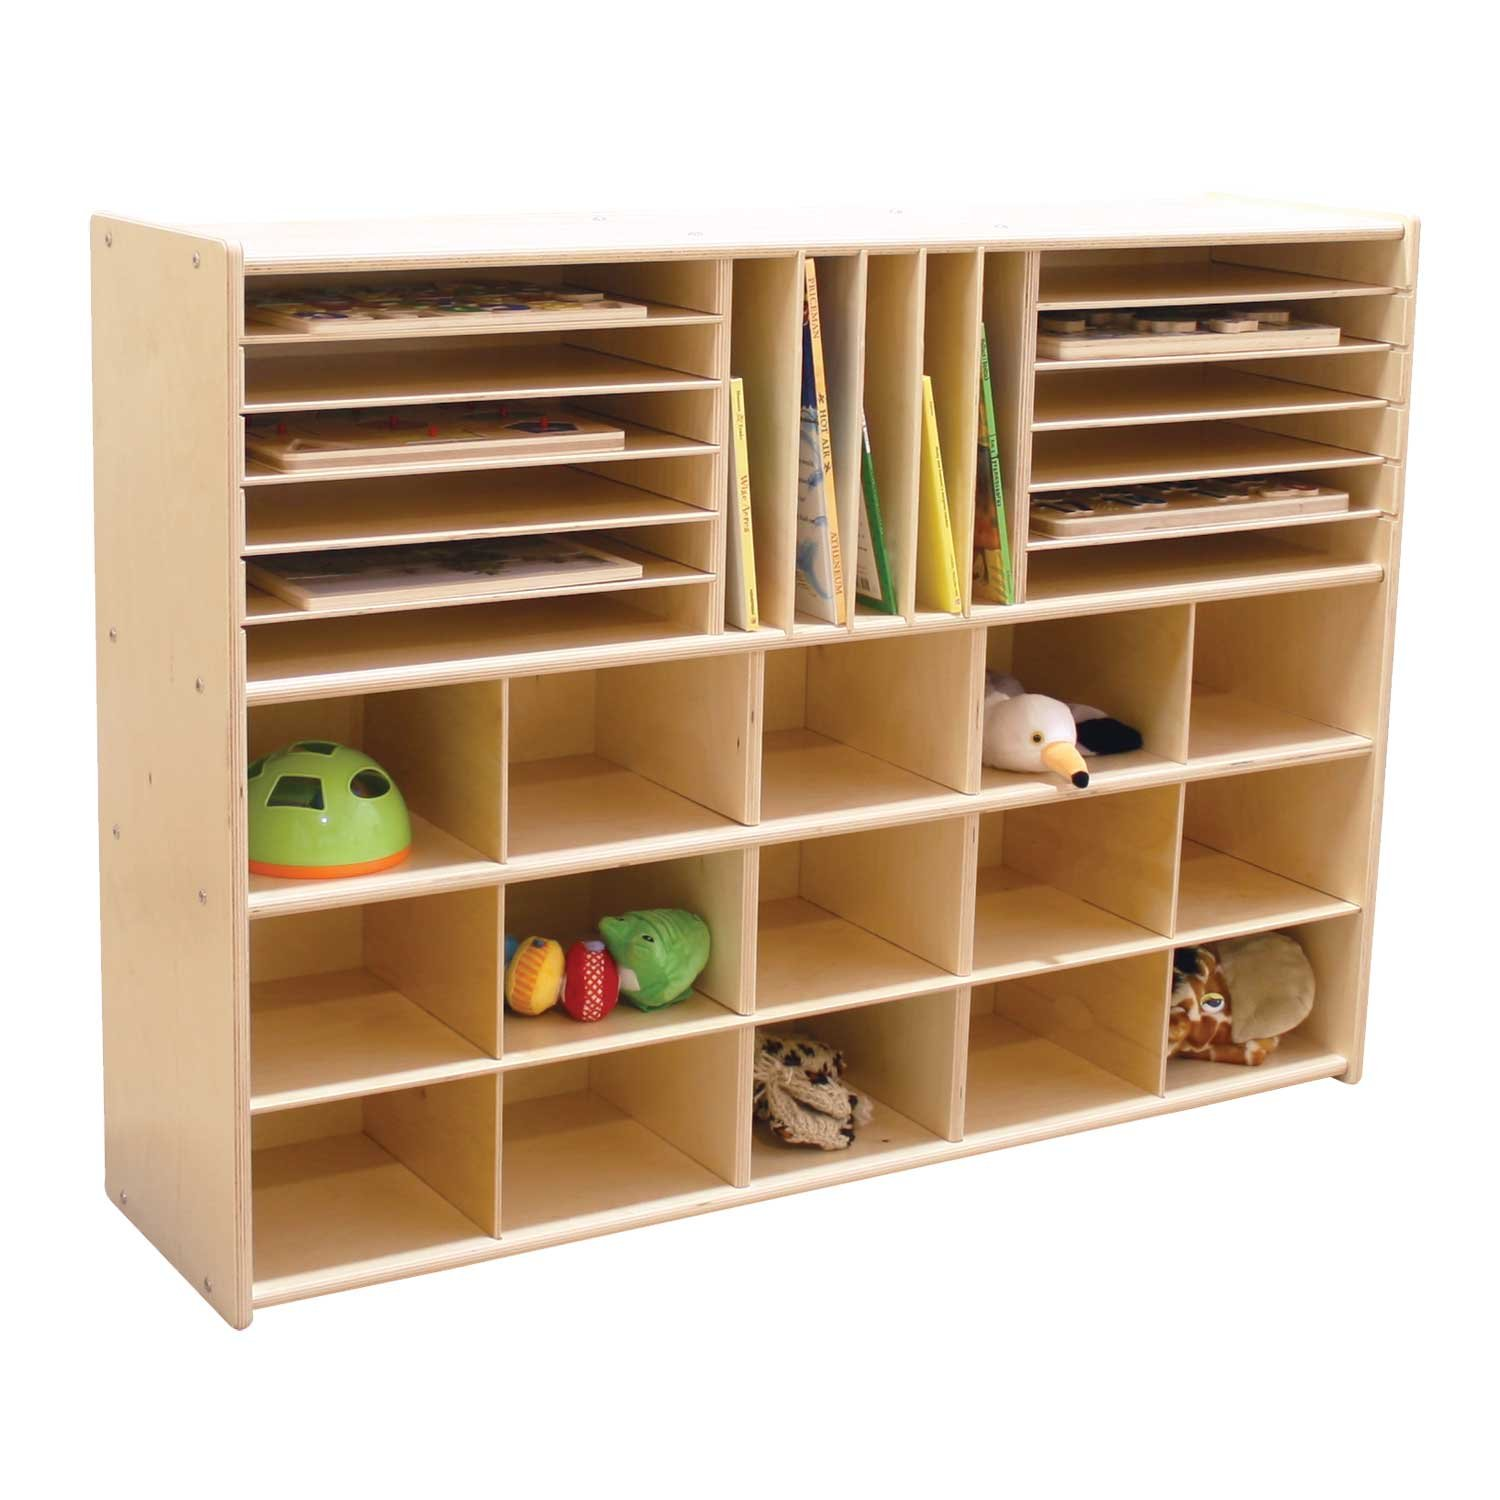 Contender C14009 Multi-Storage without Trays, 33-7/8H